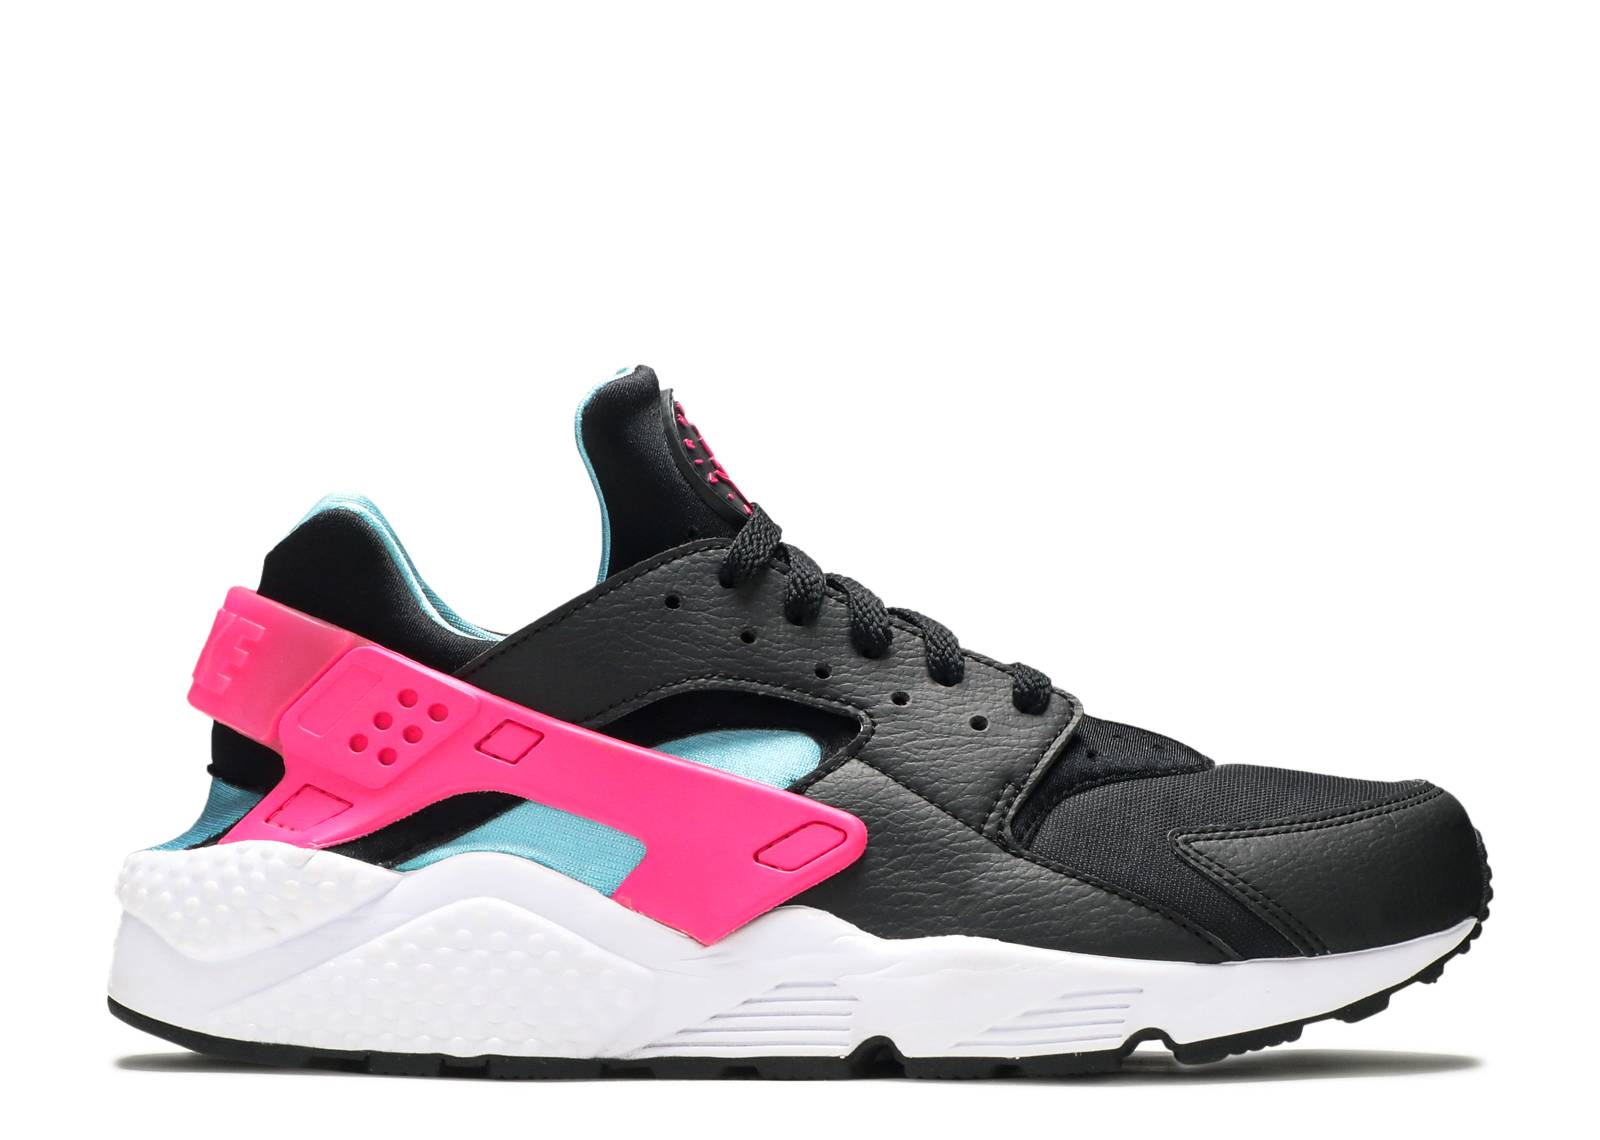 reputable site 5a7f0 e5314 nike. nike air huarache run